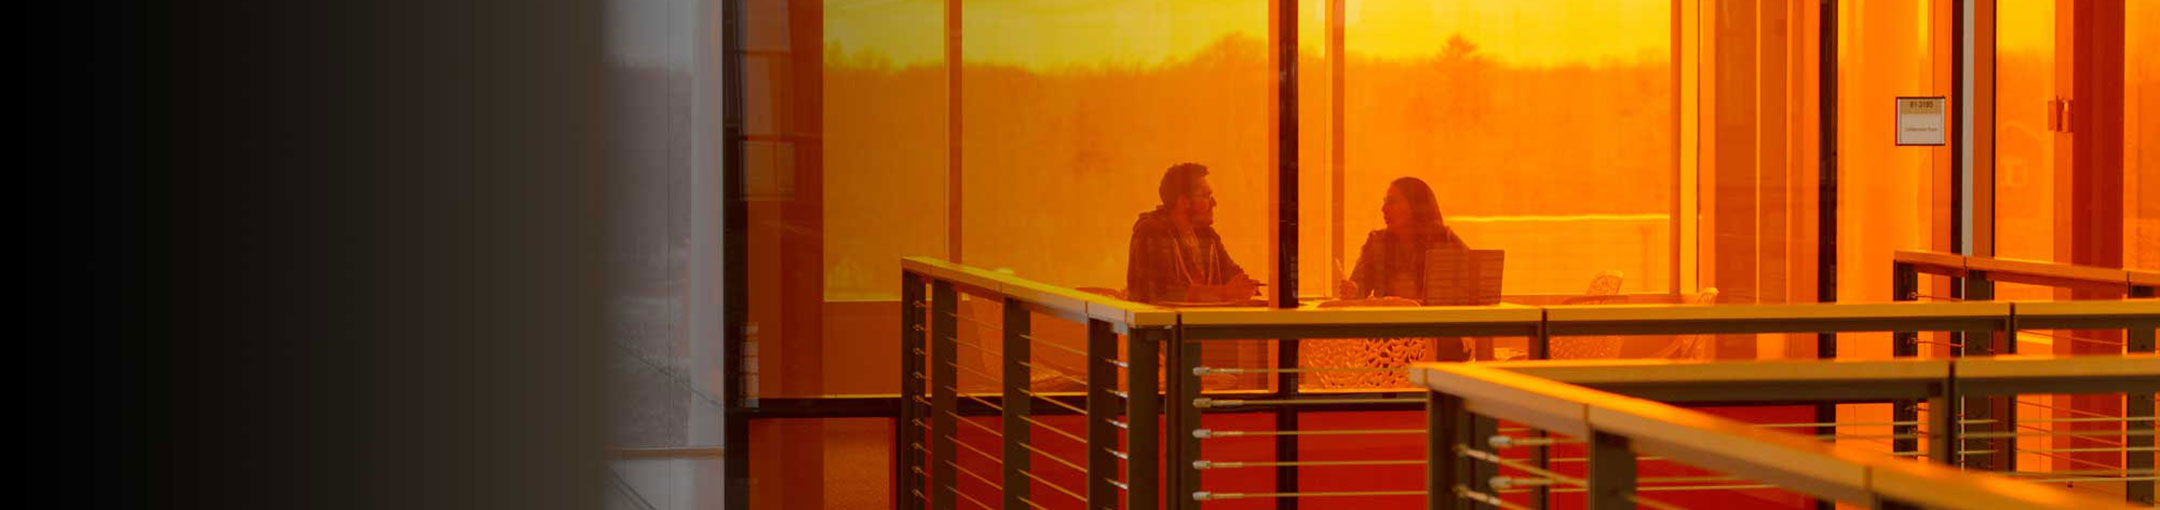 Two people meeting at a table behind an orange glass wall